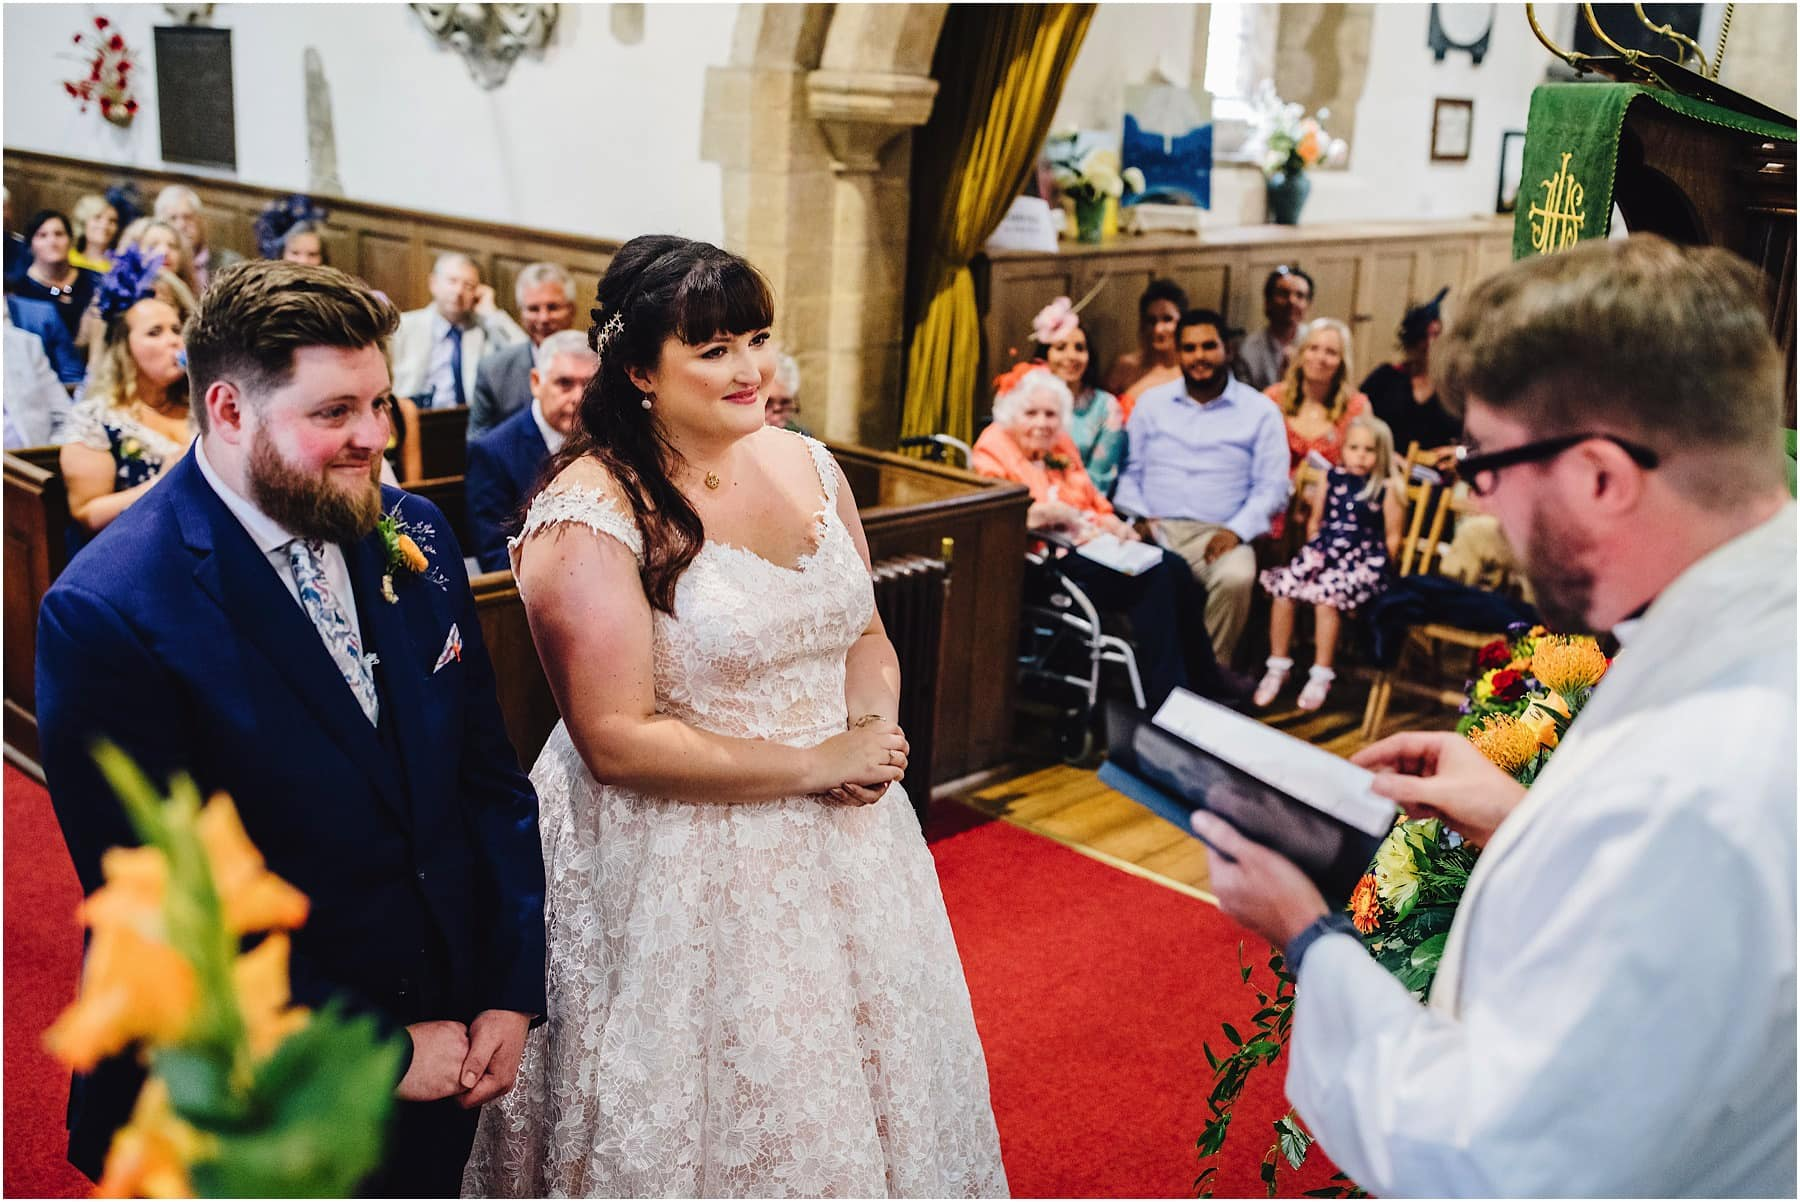 vicar delivering wedding ceremony